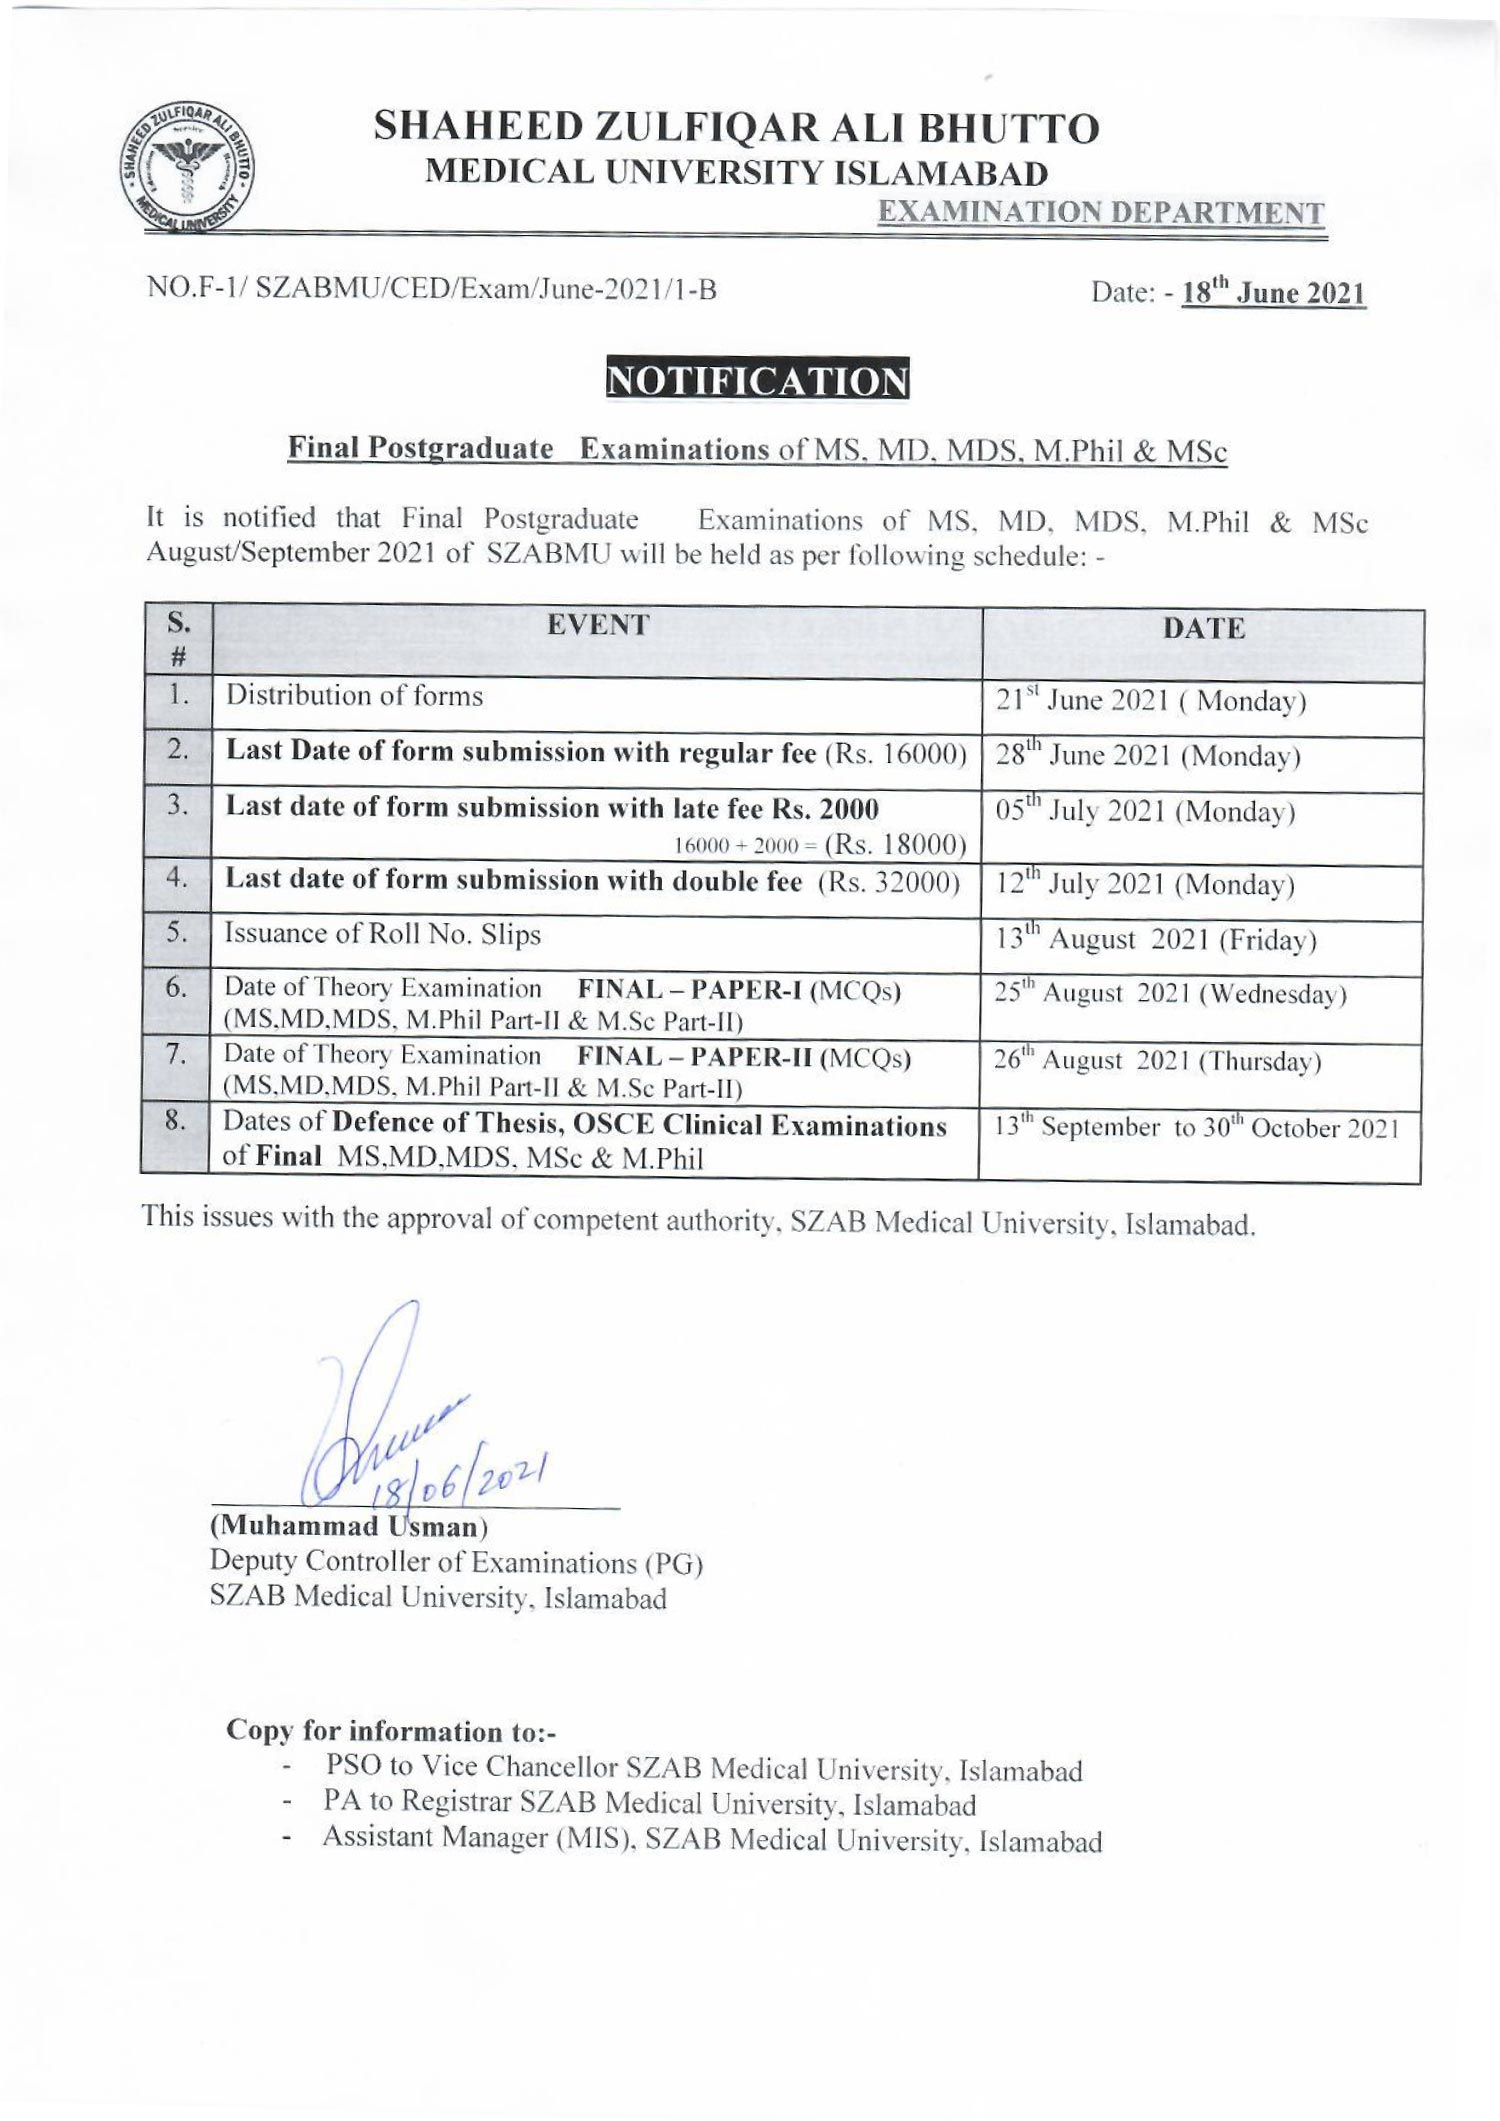 Final postgraduate Examinations of MS, MD, MDS, M.Phil & MSc August/September 2021